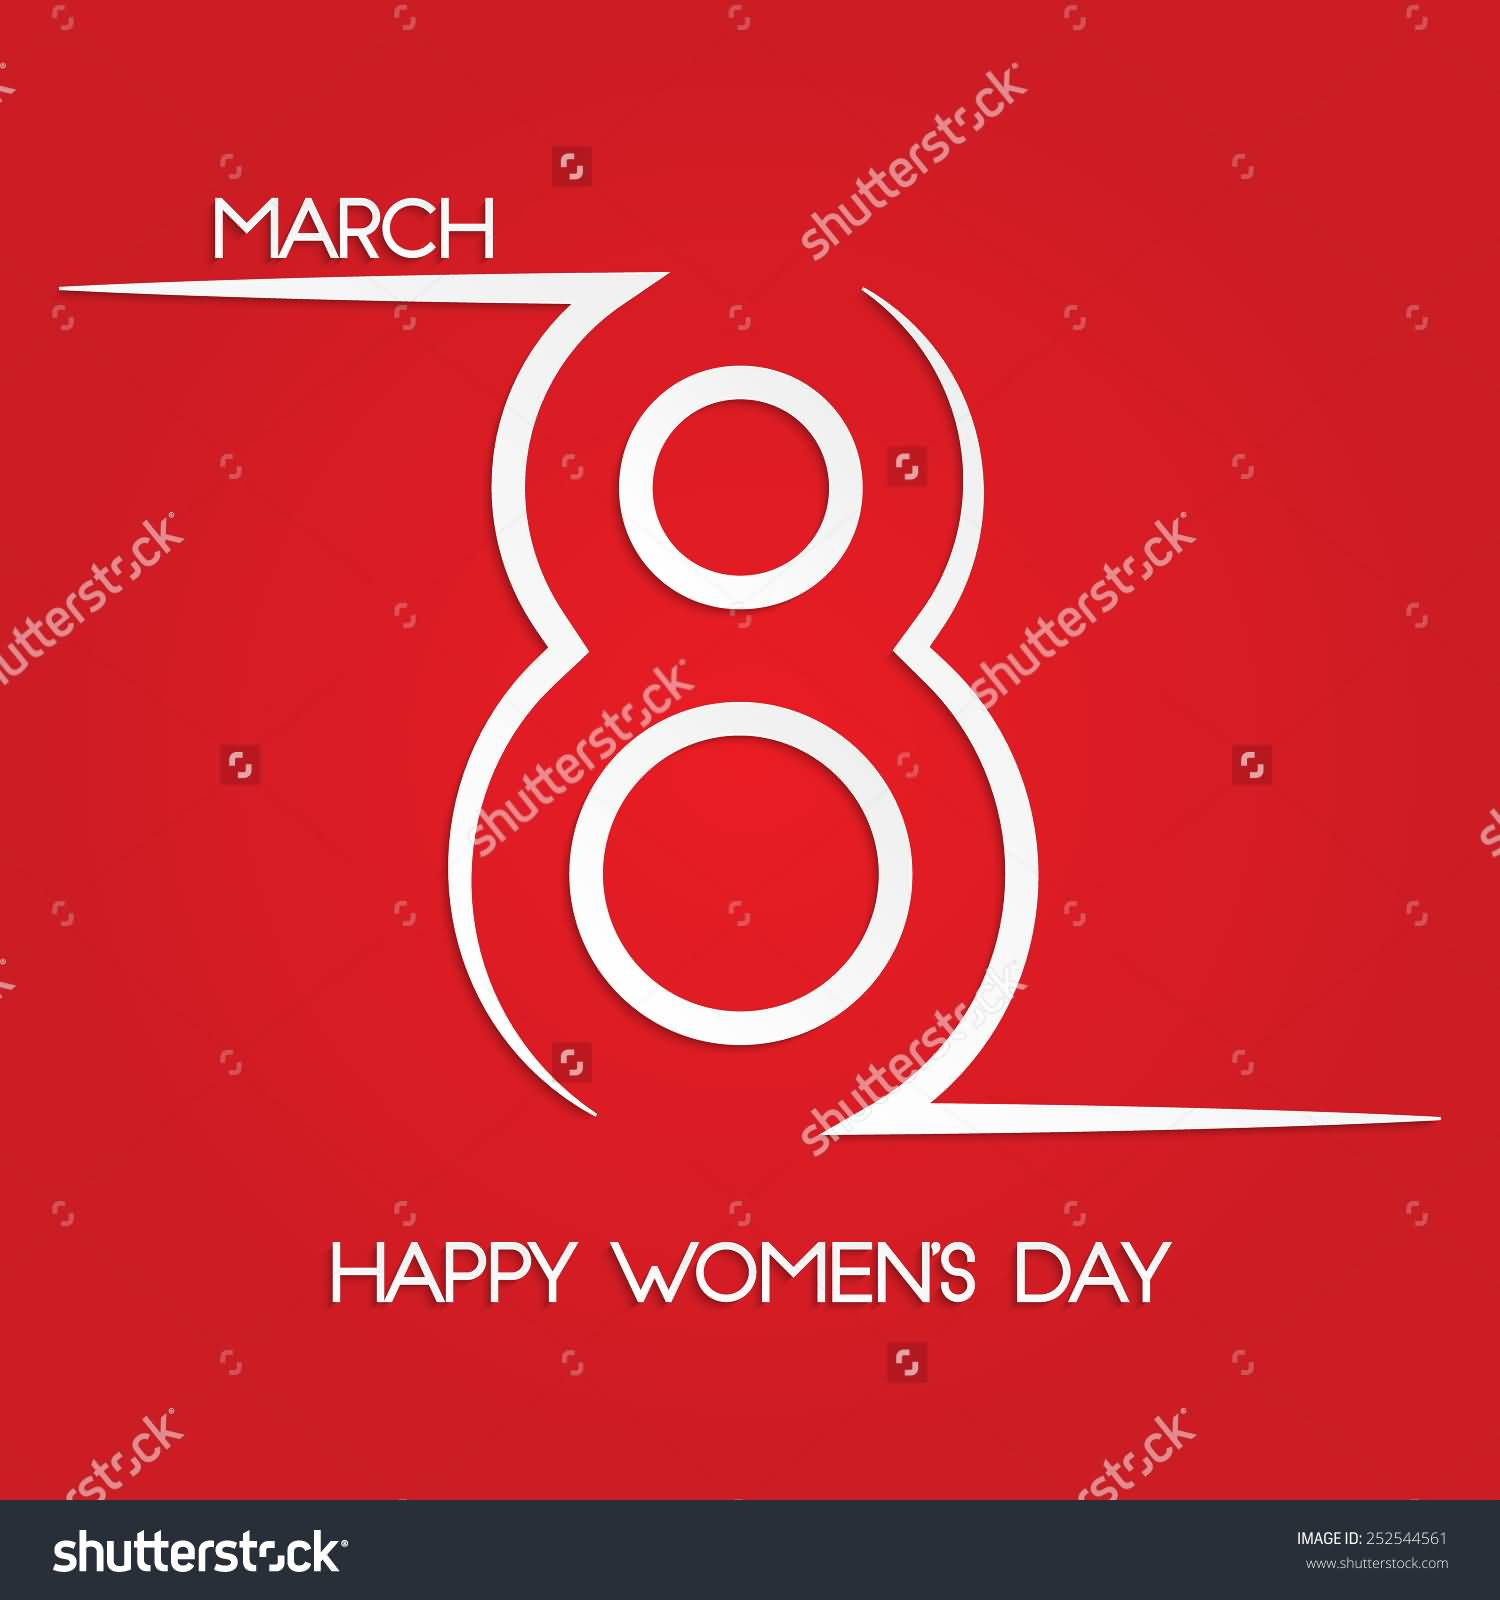 45 most beautiful womens day greeting card pictures march 8 happy womens day red greeting card kristyandbryce Gallery